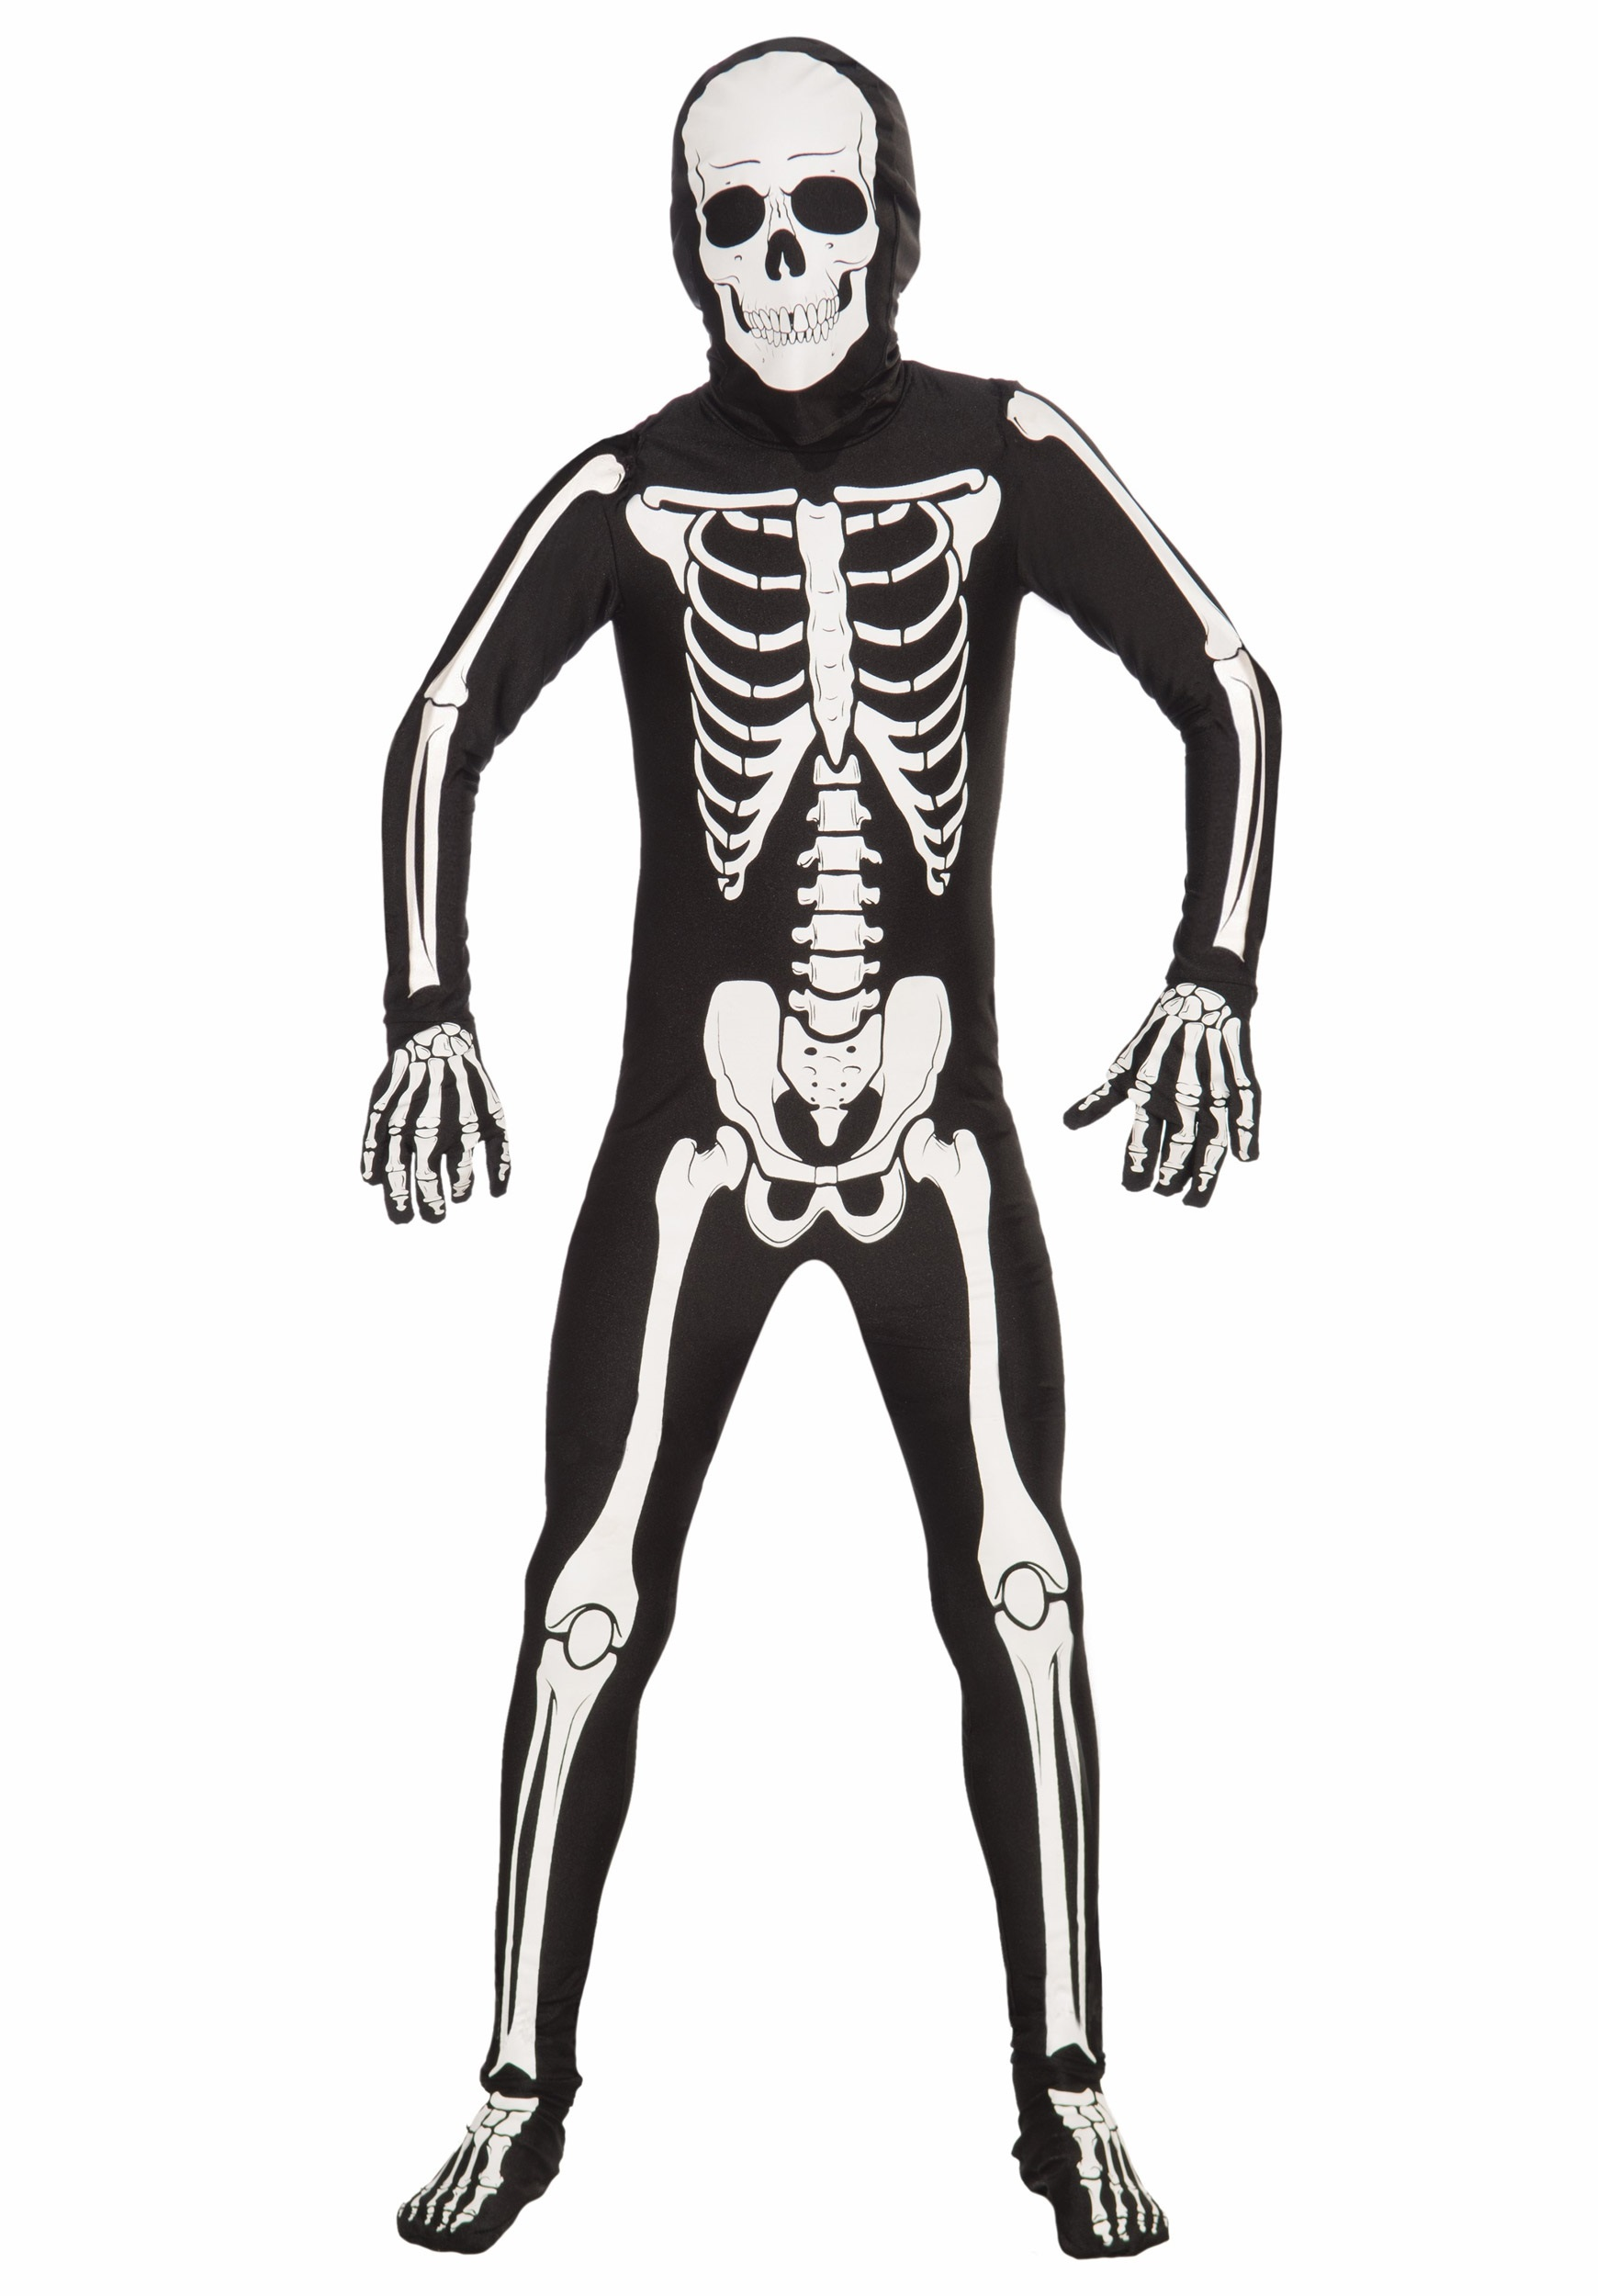 Skeleton Body Parts For Kids